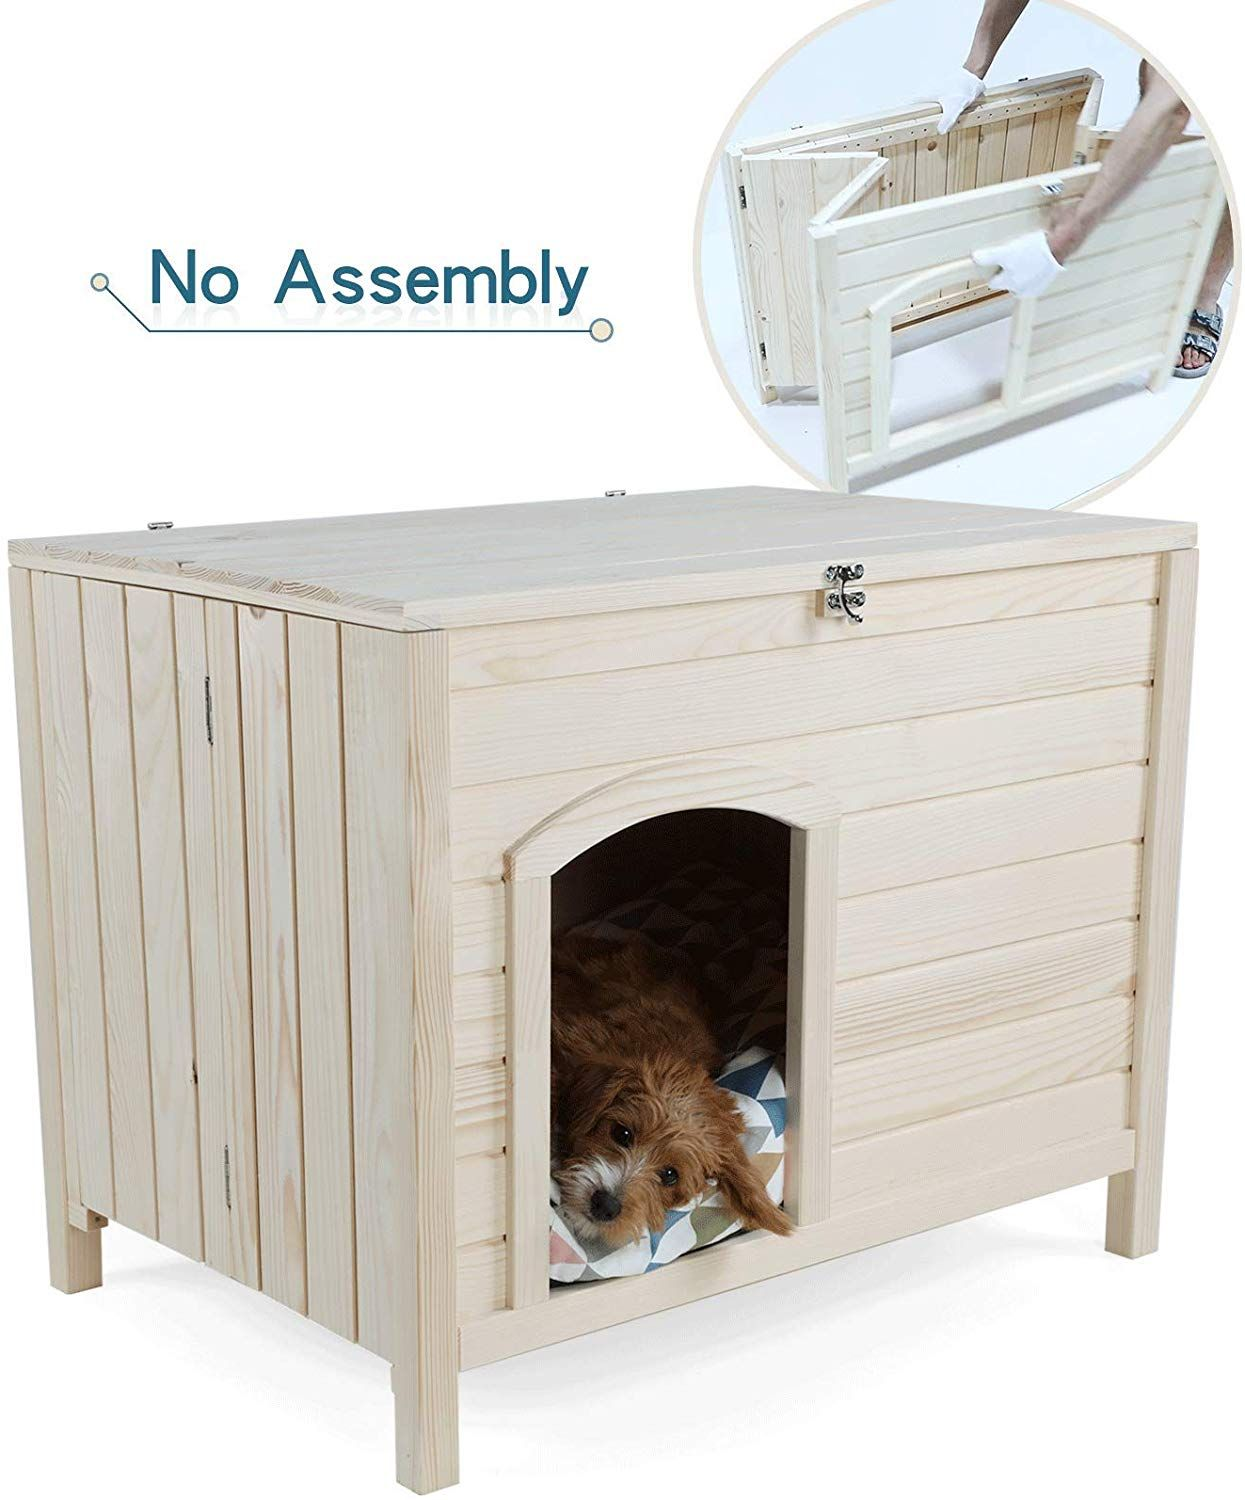 Petsfit Portable Wooden In 2020 Indoor Dog House Cool Dog Houses Wooden Dog House